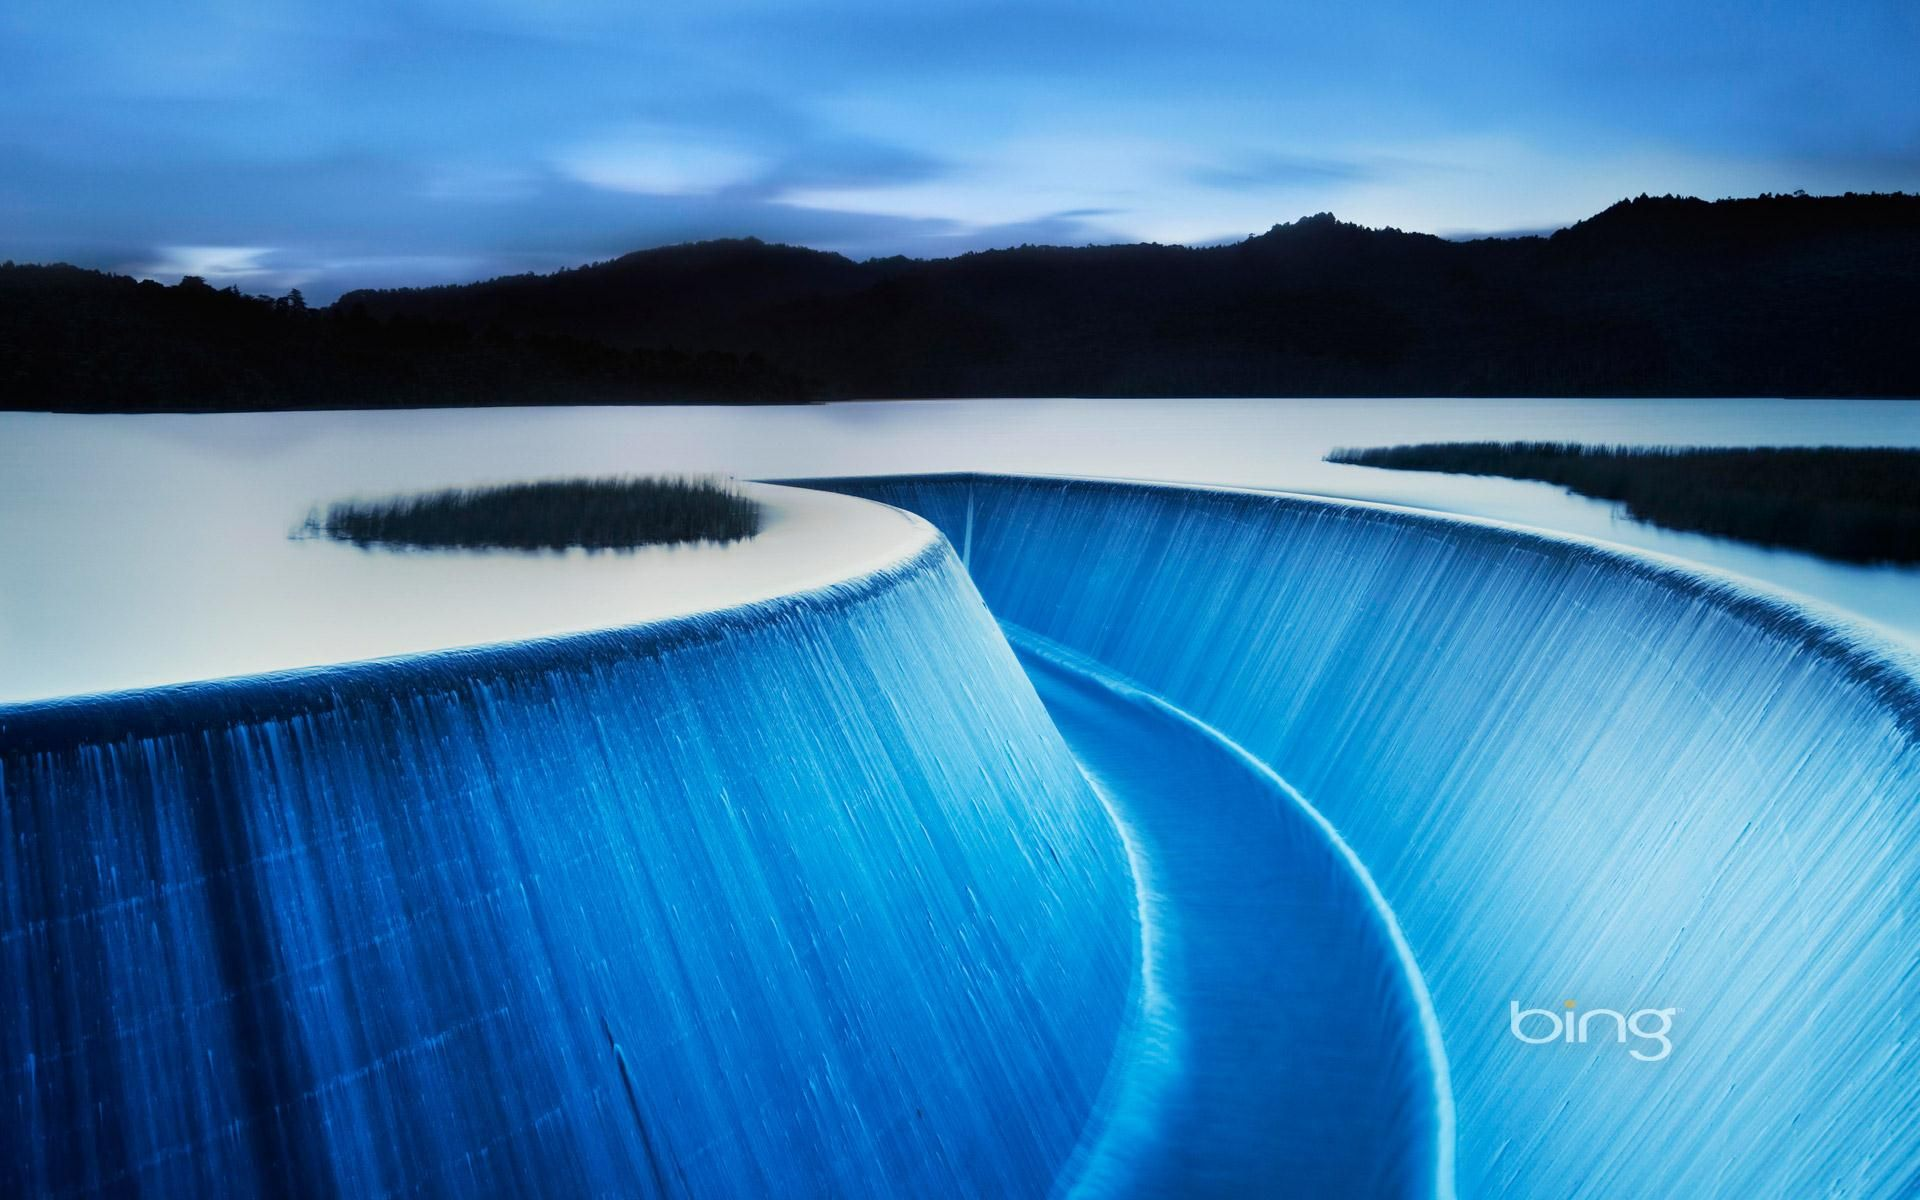 50 Bing Wallpapers For Windows 8 On Wallpapersafari